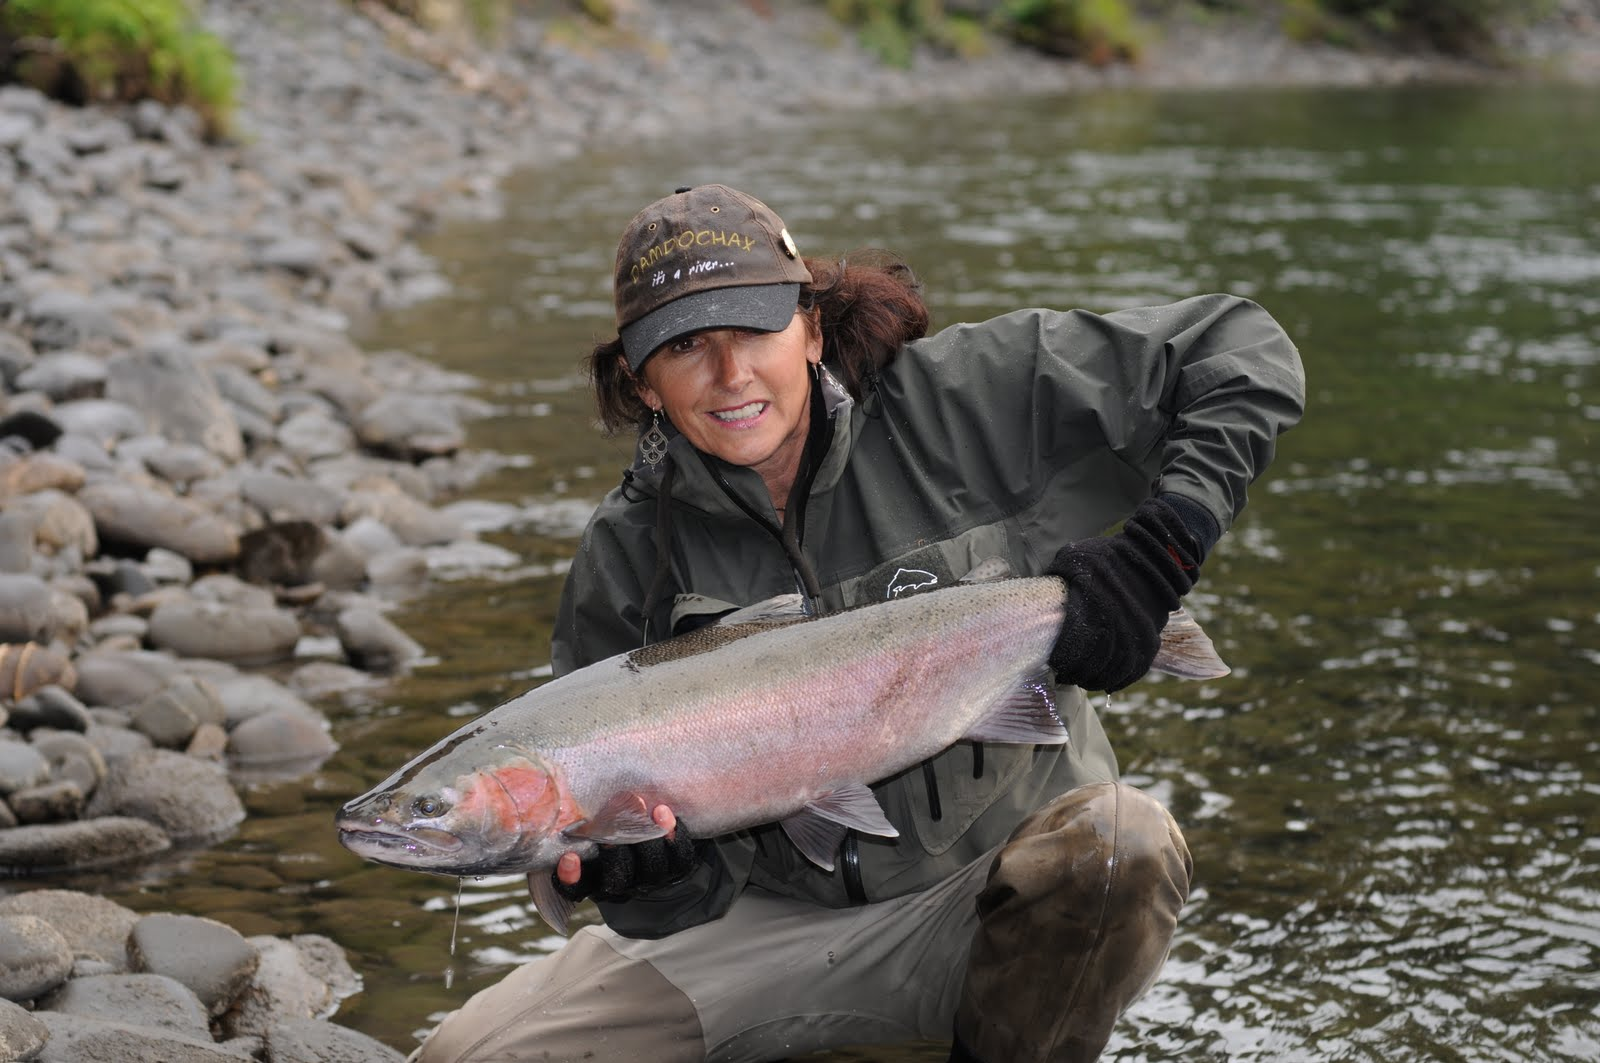 The Trout Huntress